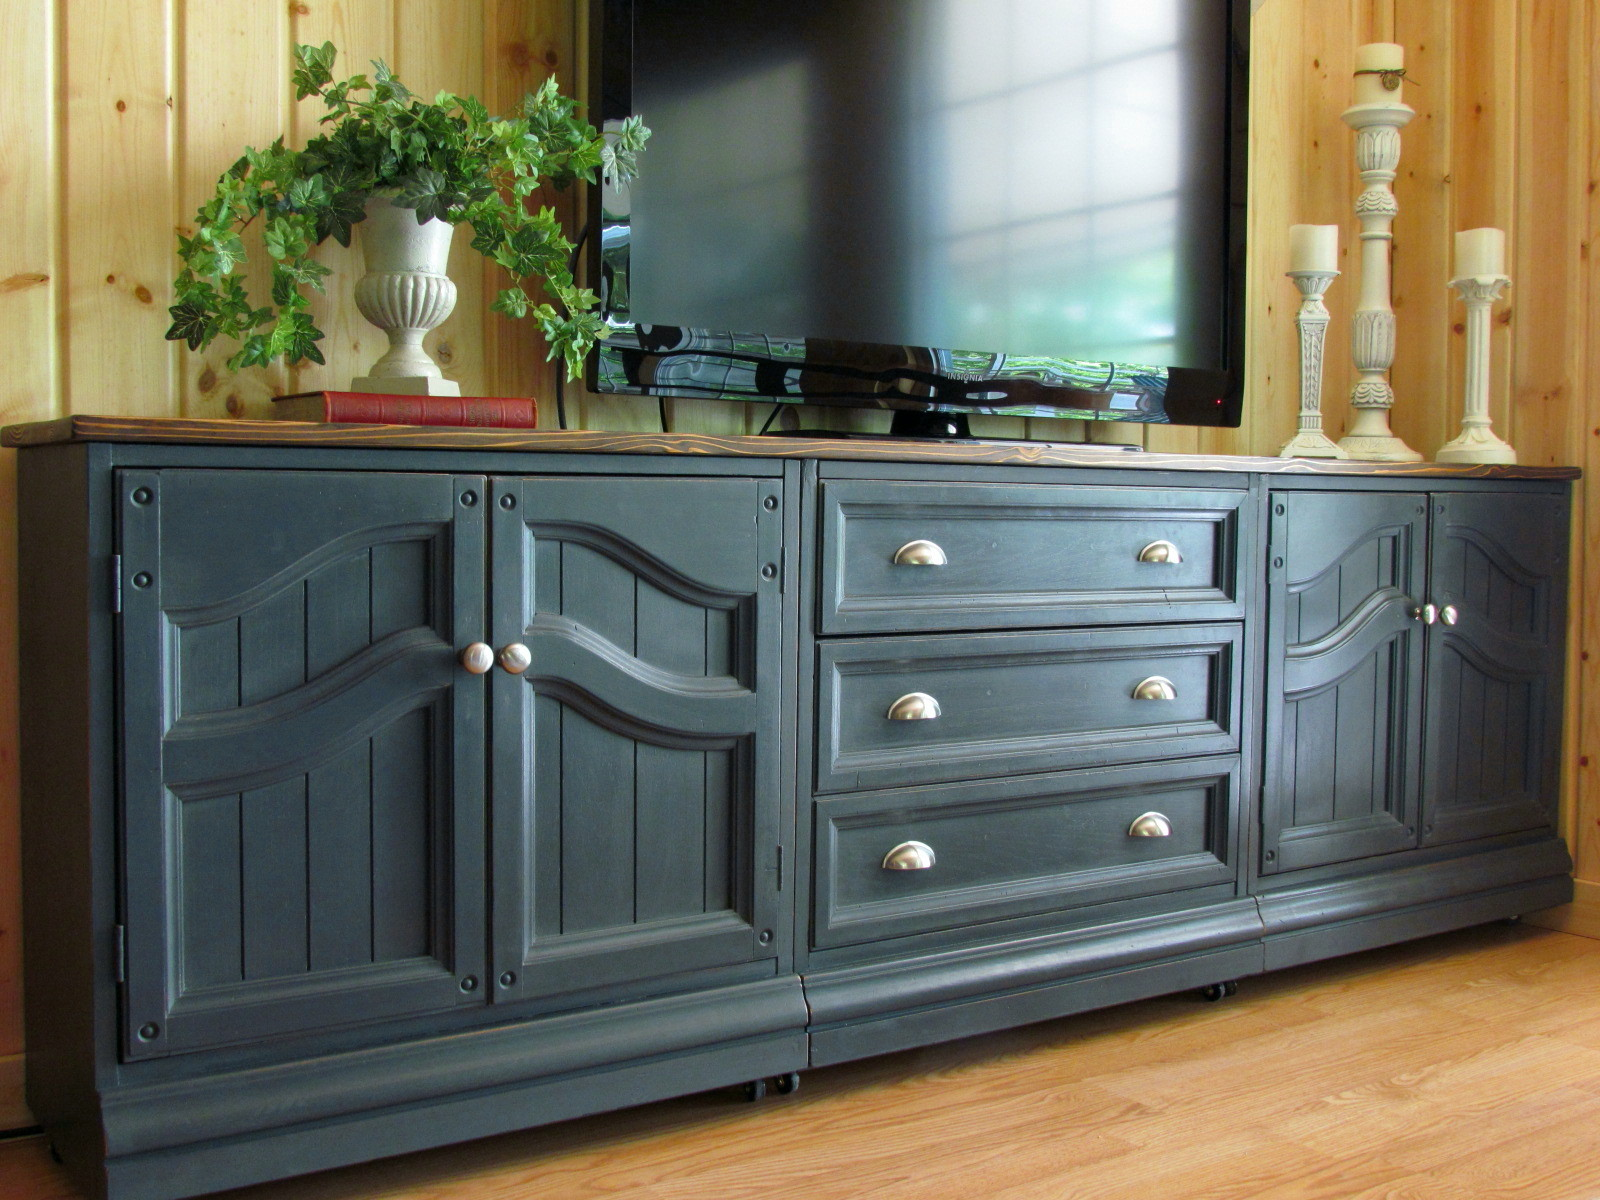 TV Cabinet in Graphite & Wildwood Creek: TV Cabinet in Graphite